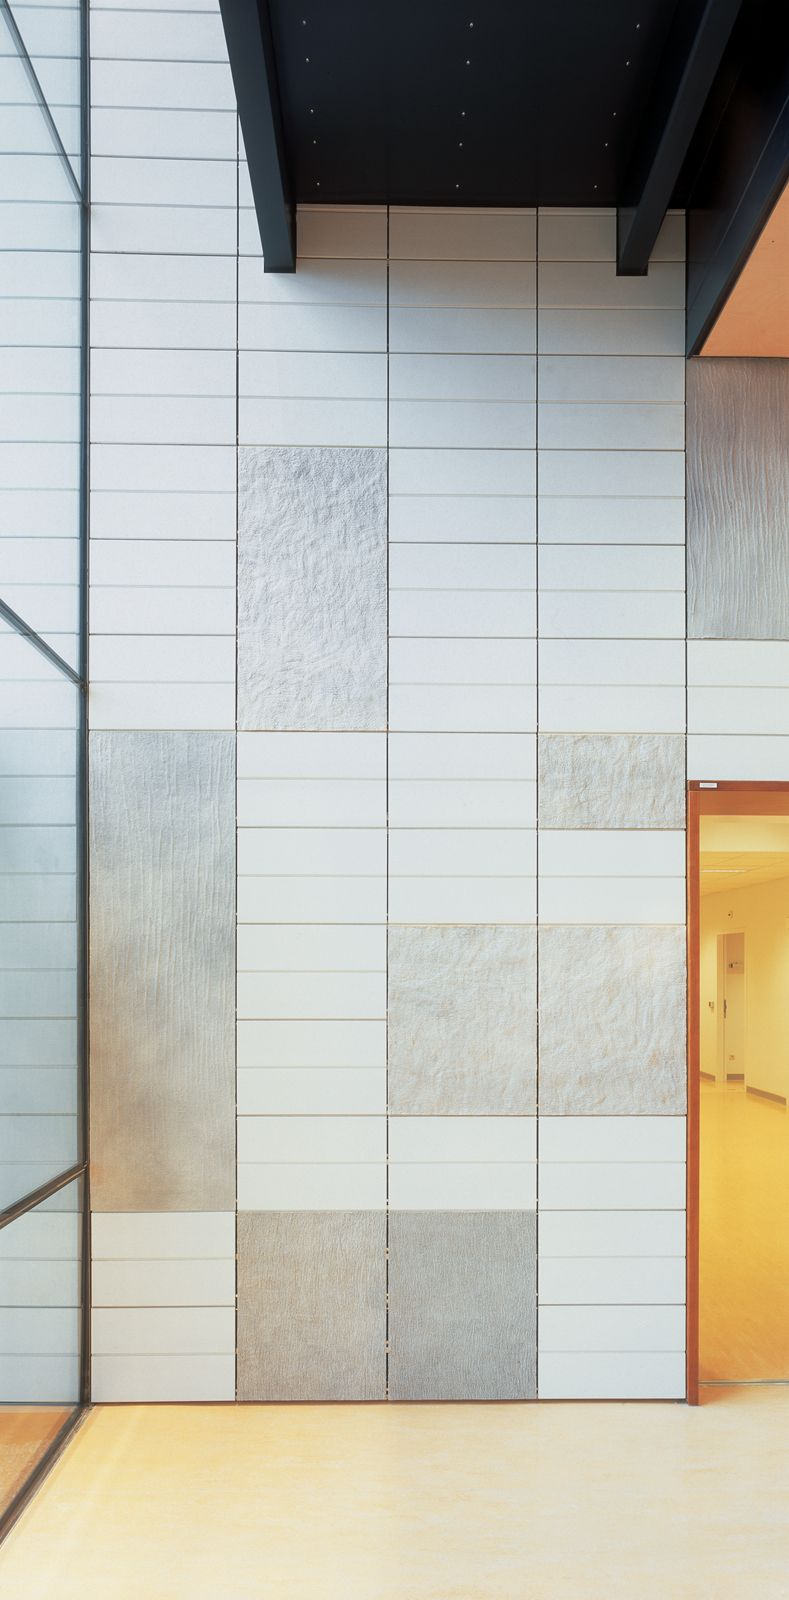 Chemotherapy Room Design: Modern Rooms With Colorful, Alluring Tile By Aileen Kwun